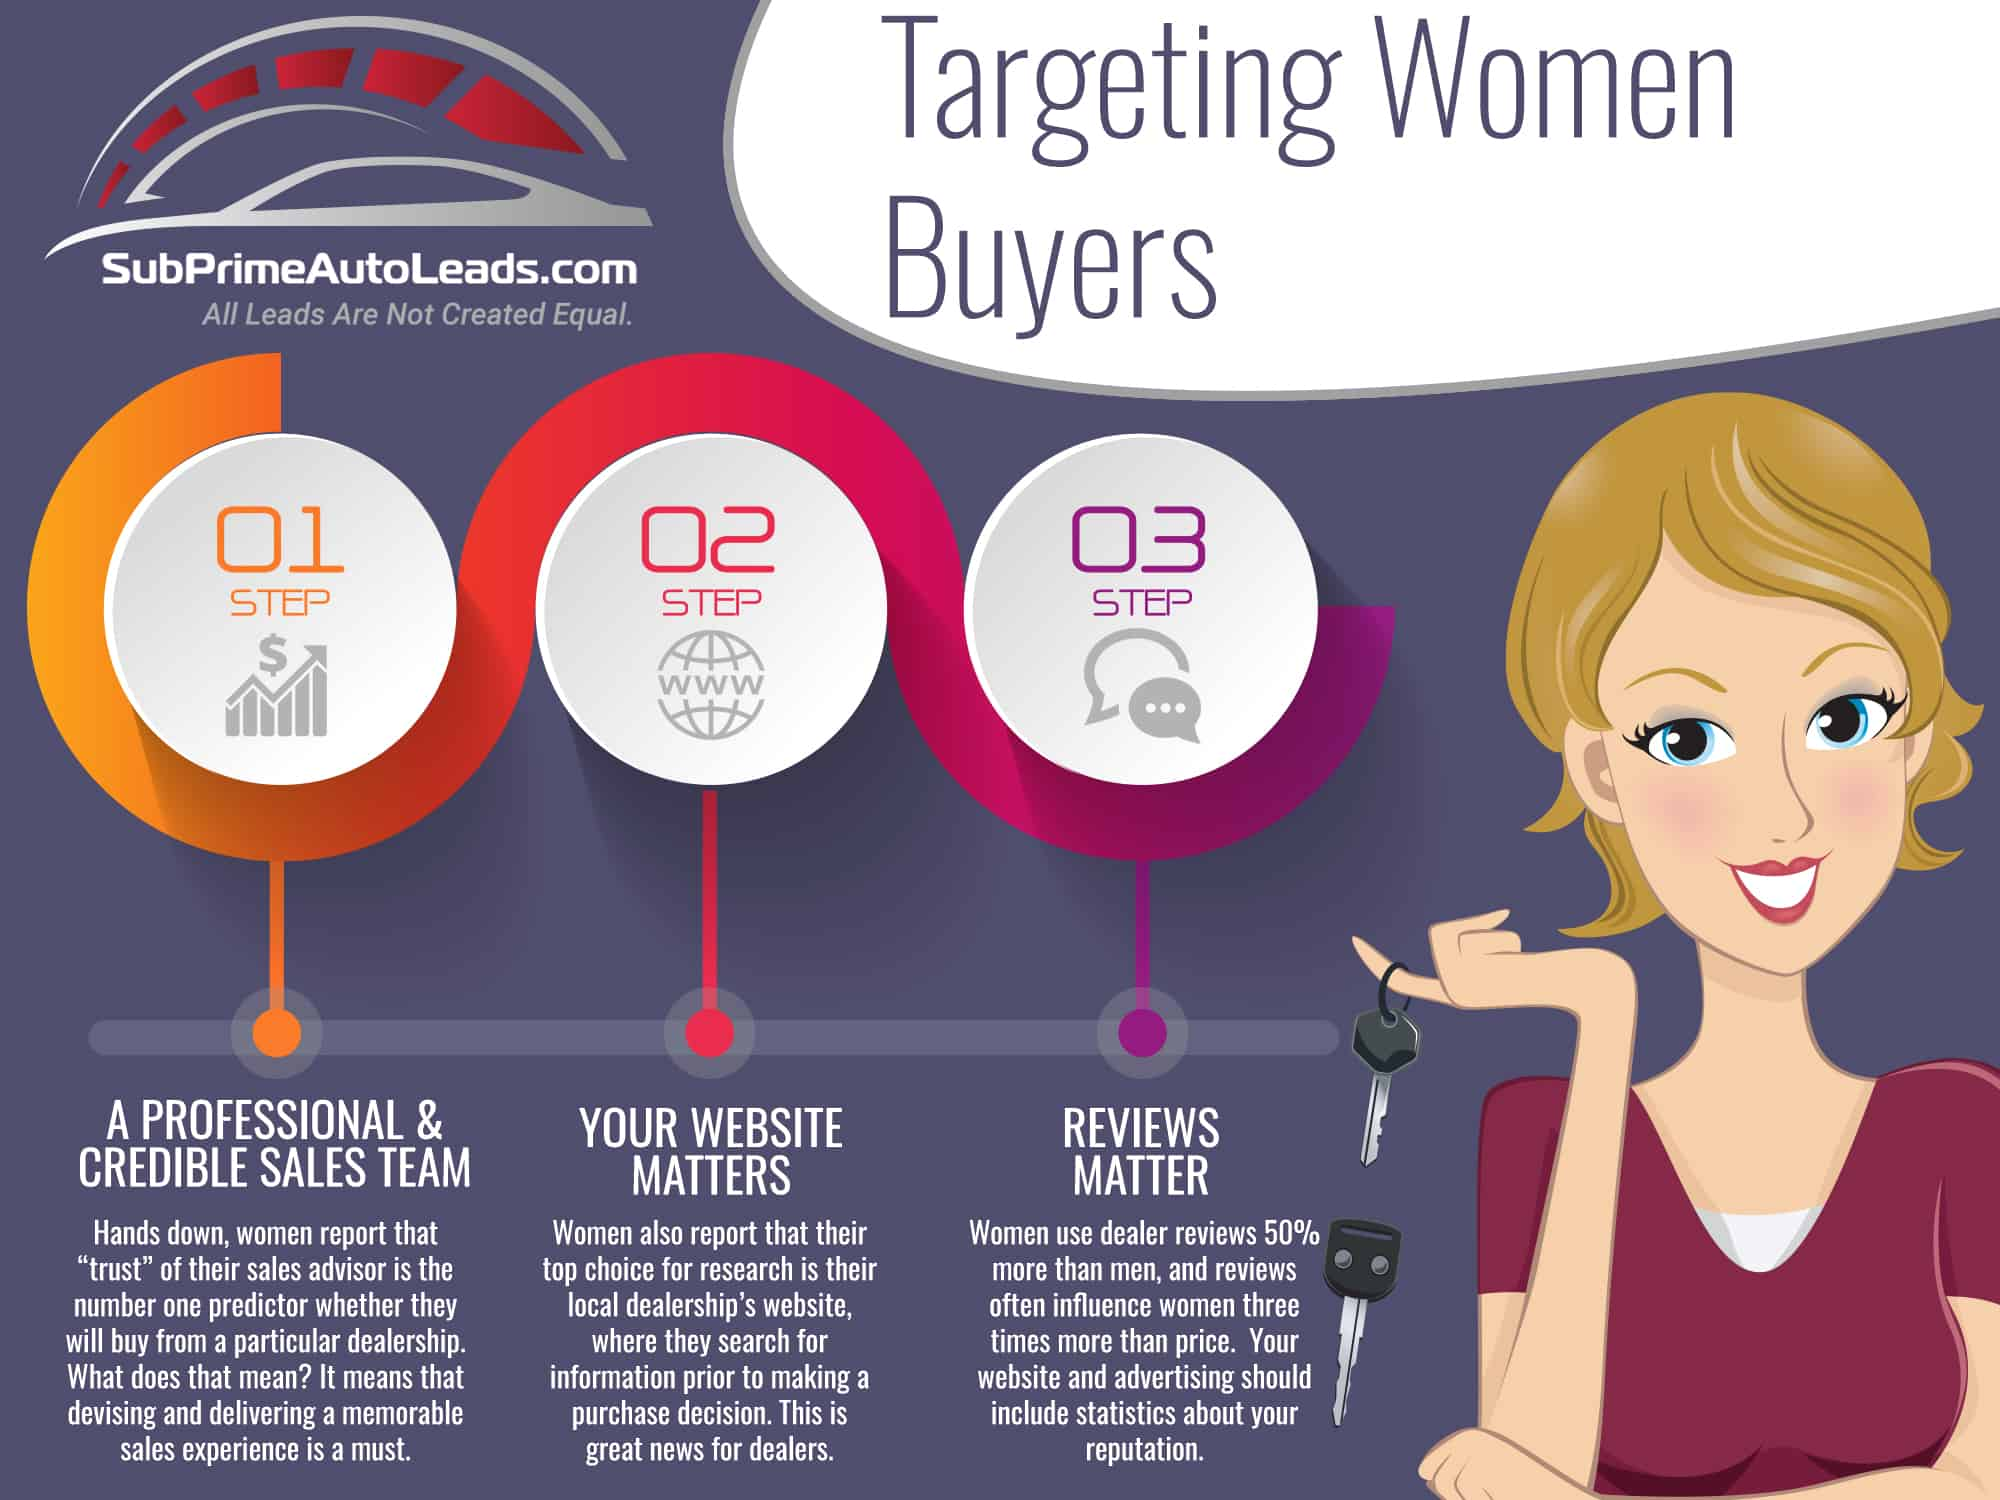 TargetingWomen